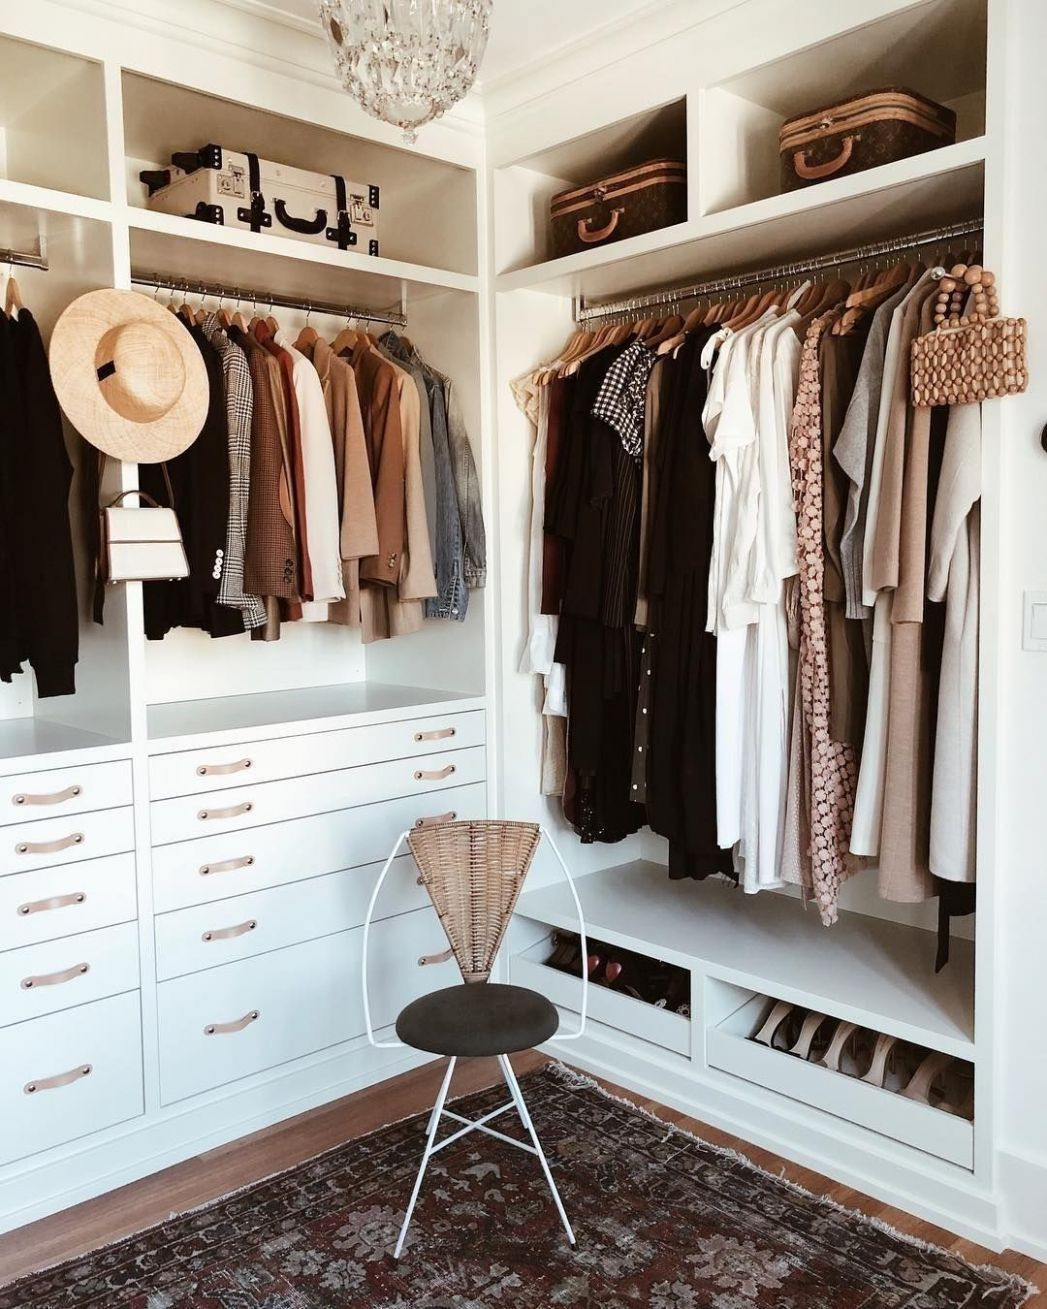 ♡ pinterest - @insppo ♡ | Master closet layout, Closet designs ...